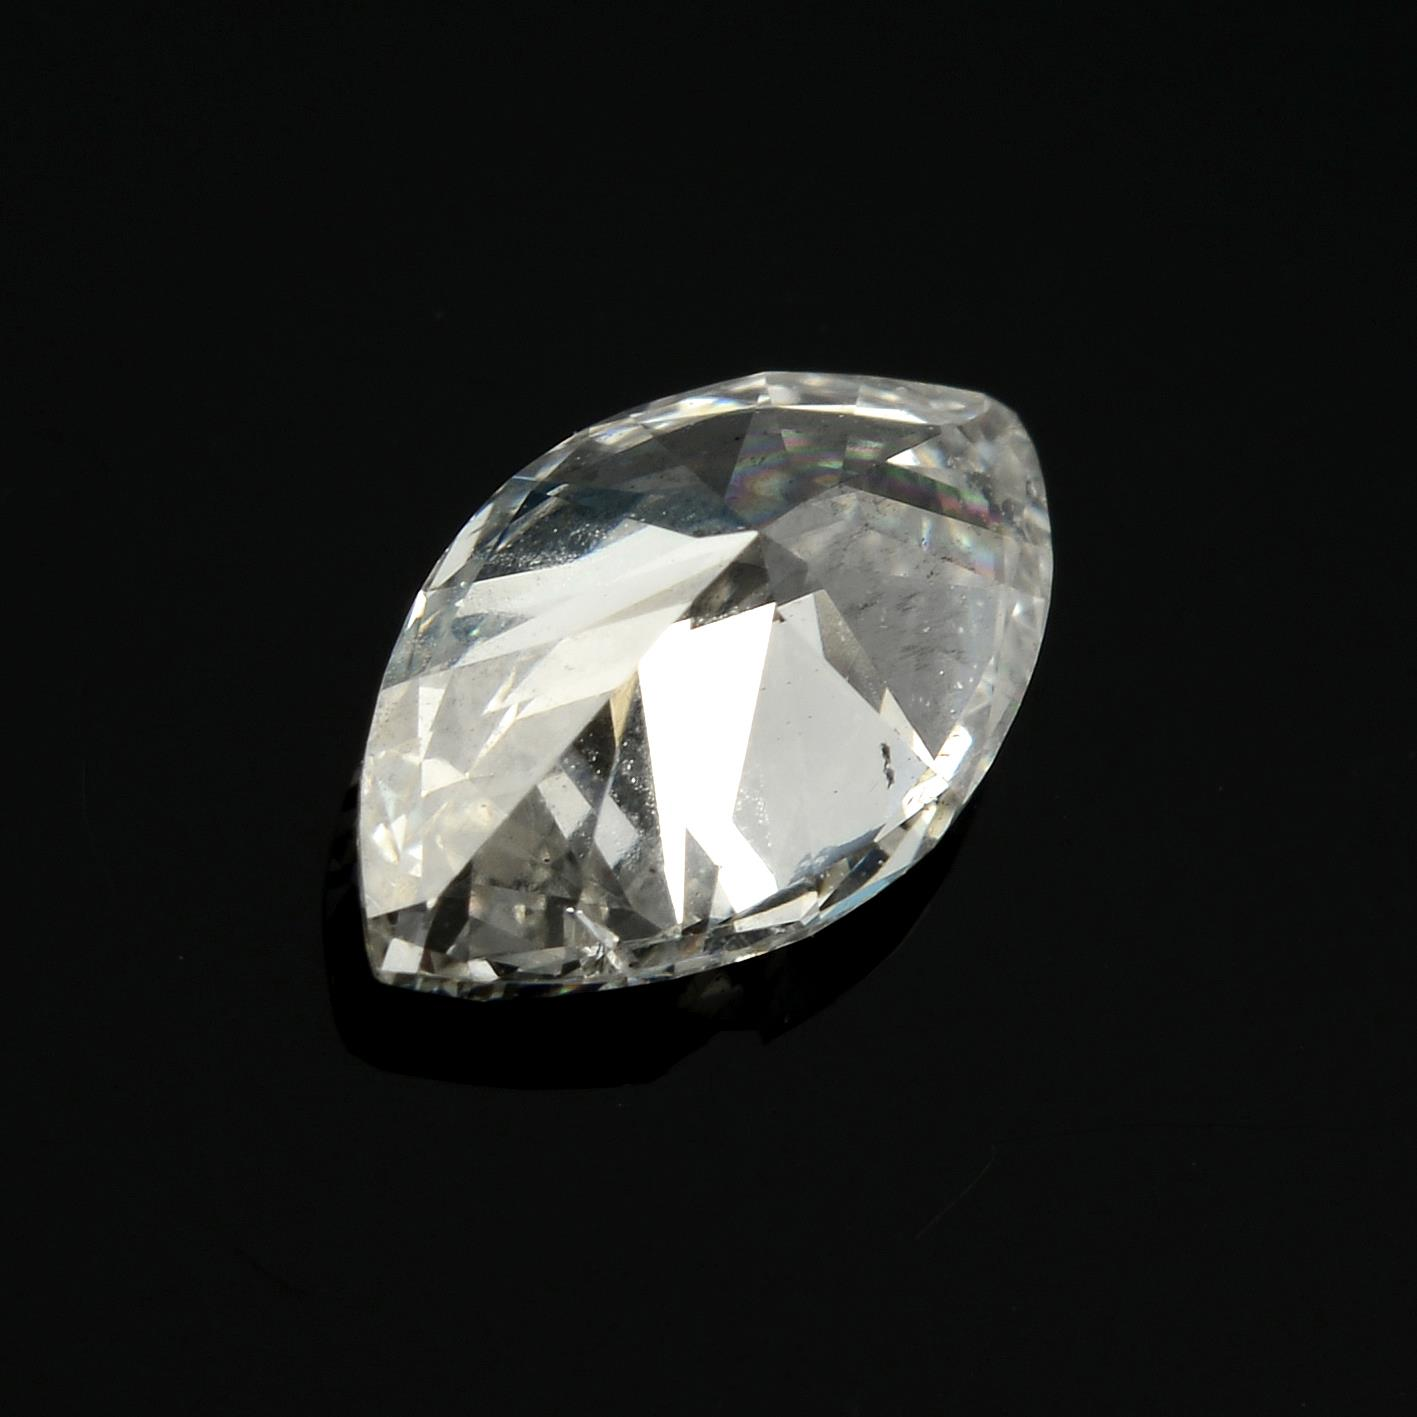 A marquise shape diamond, weighing 0.49ct. - Image 2 of 2